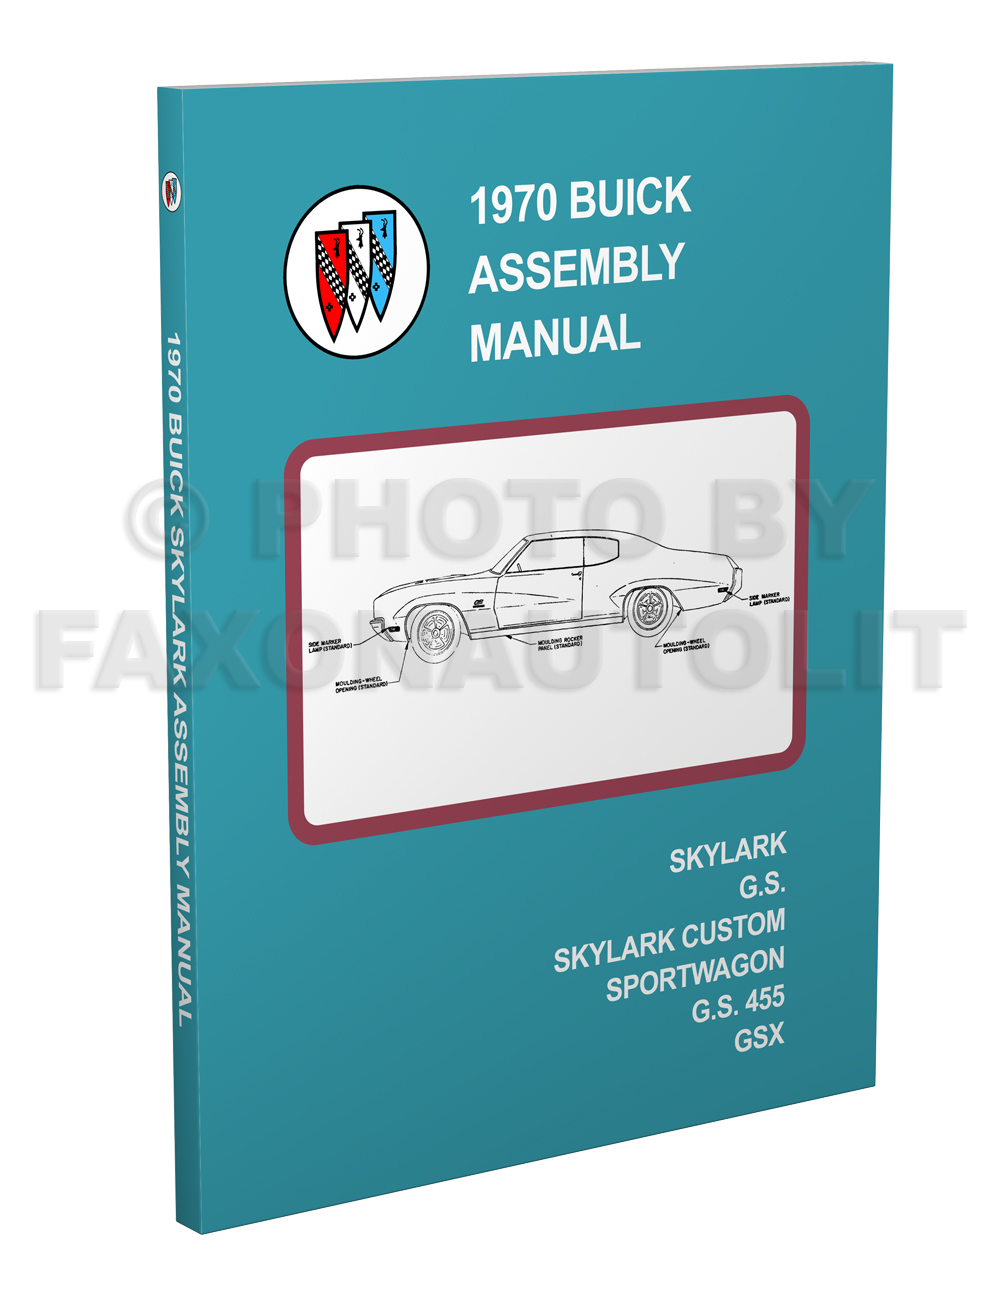 Search 1968 1969 70 71 72 Buick Skylark Gs Gsx Electra Lesabre Wiring 1970 And Factory Assembly Manual Reprint